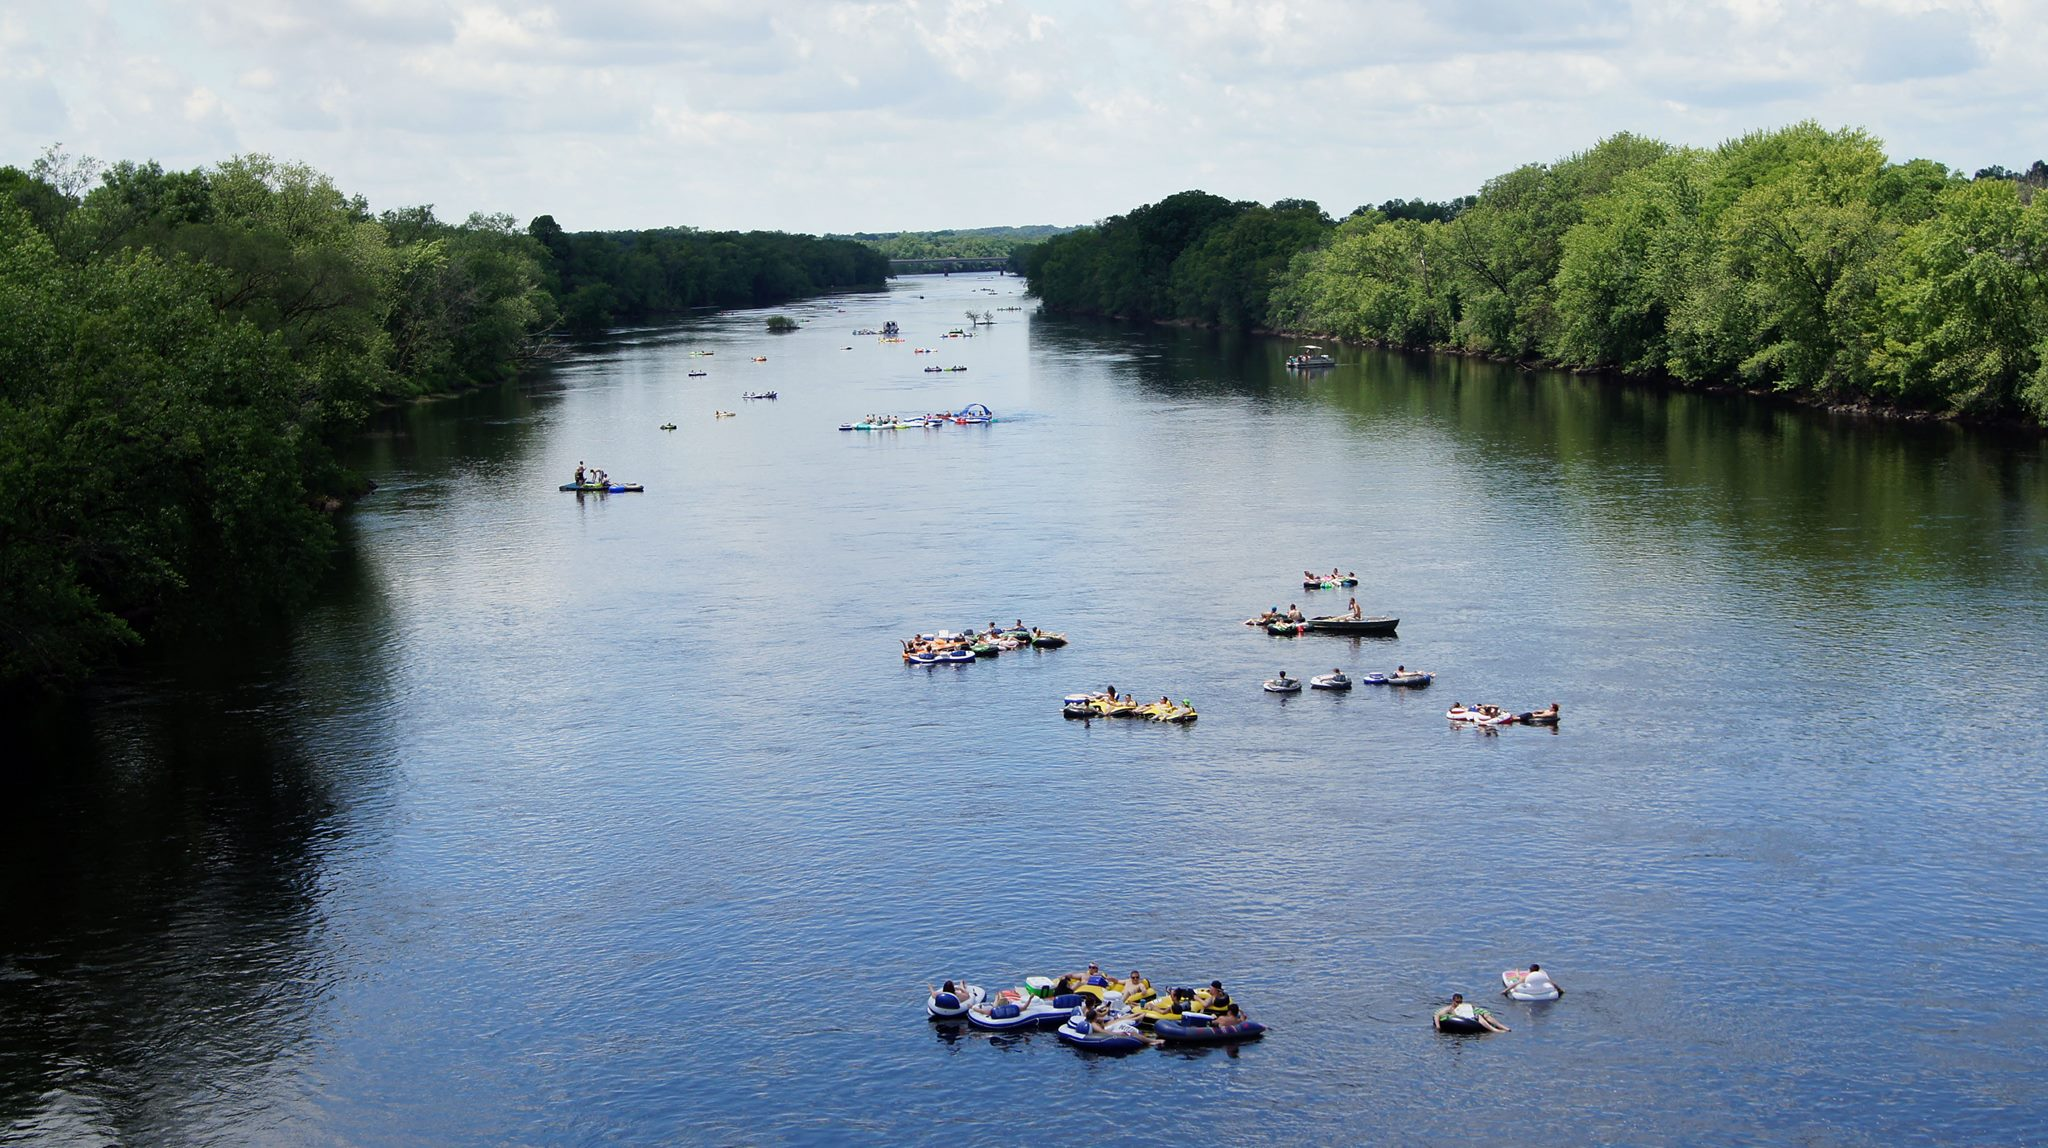 Floating Down Chippewa River